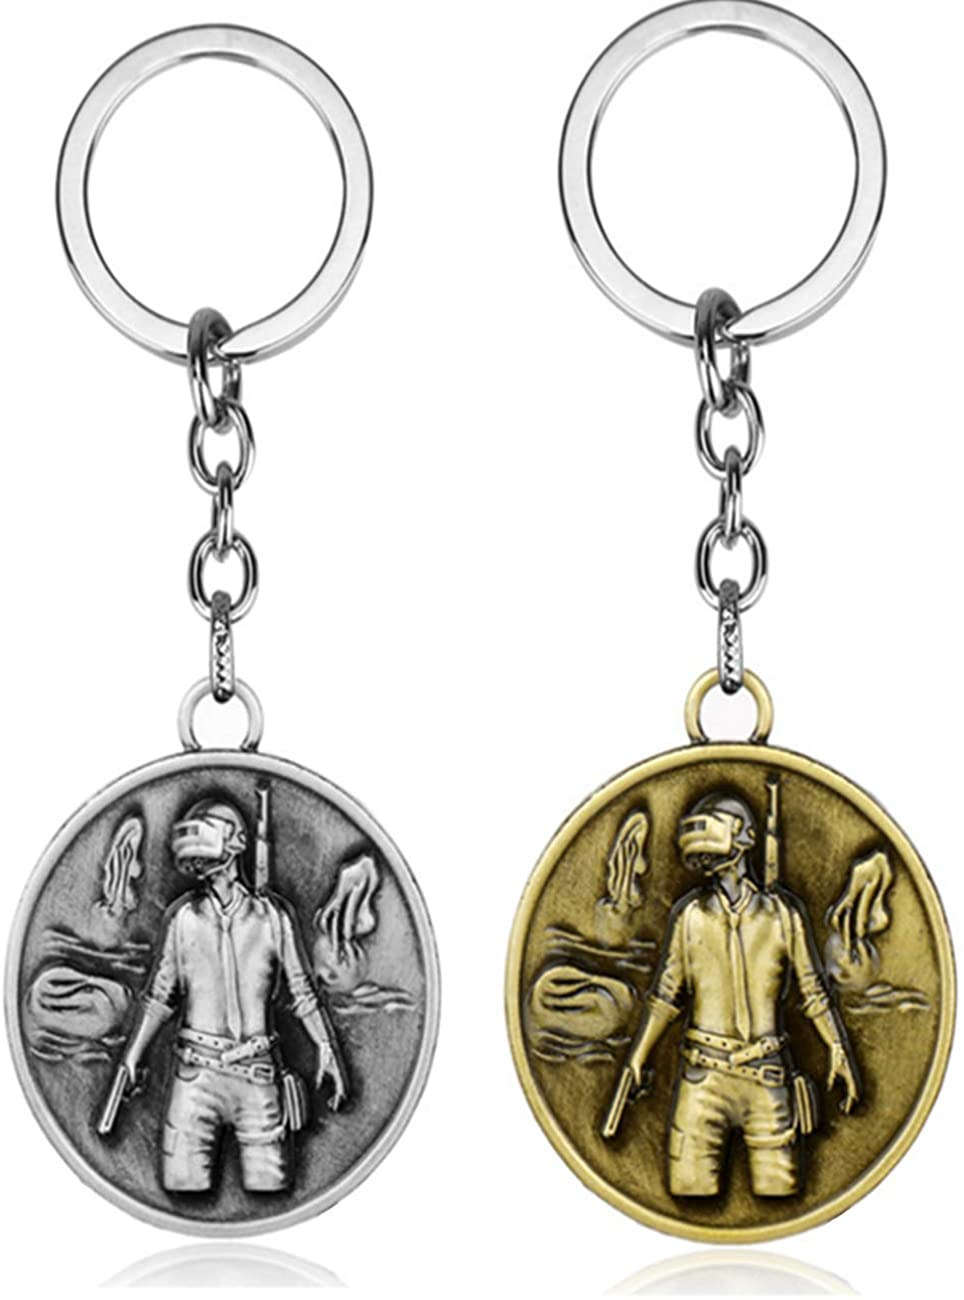 Cartoon Anime and Games Keychain Jewelry Key Ring Gifts for Men Women Teen Boy Girls Kids